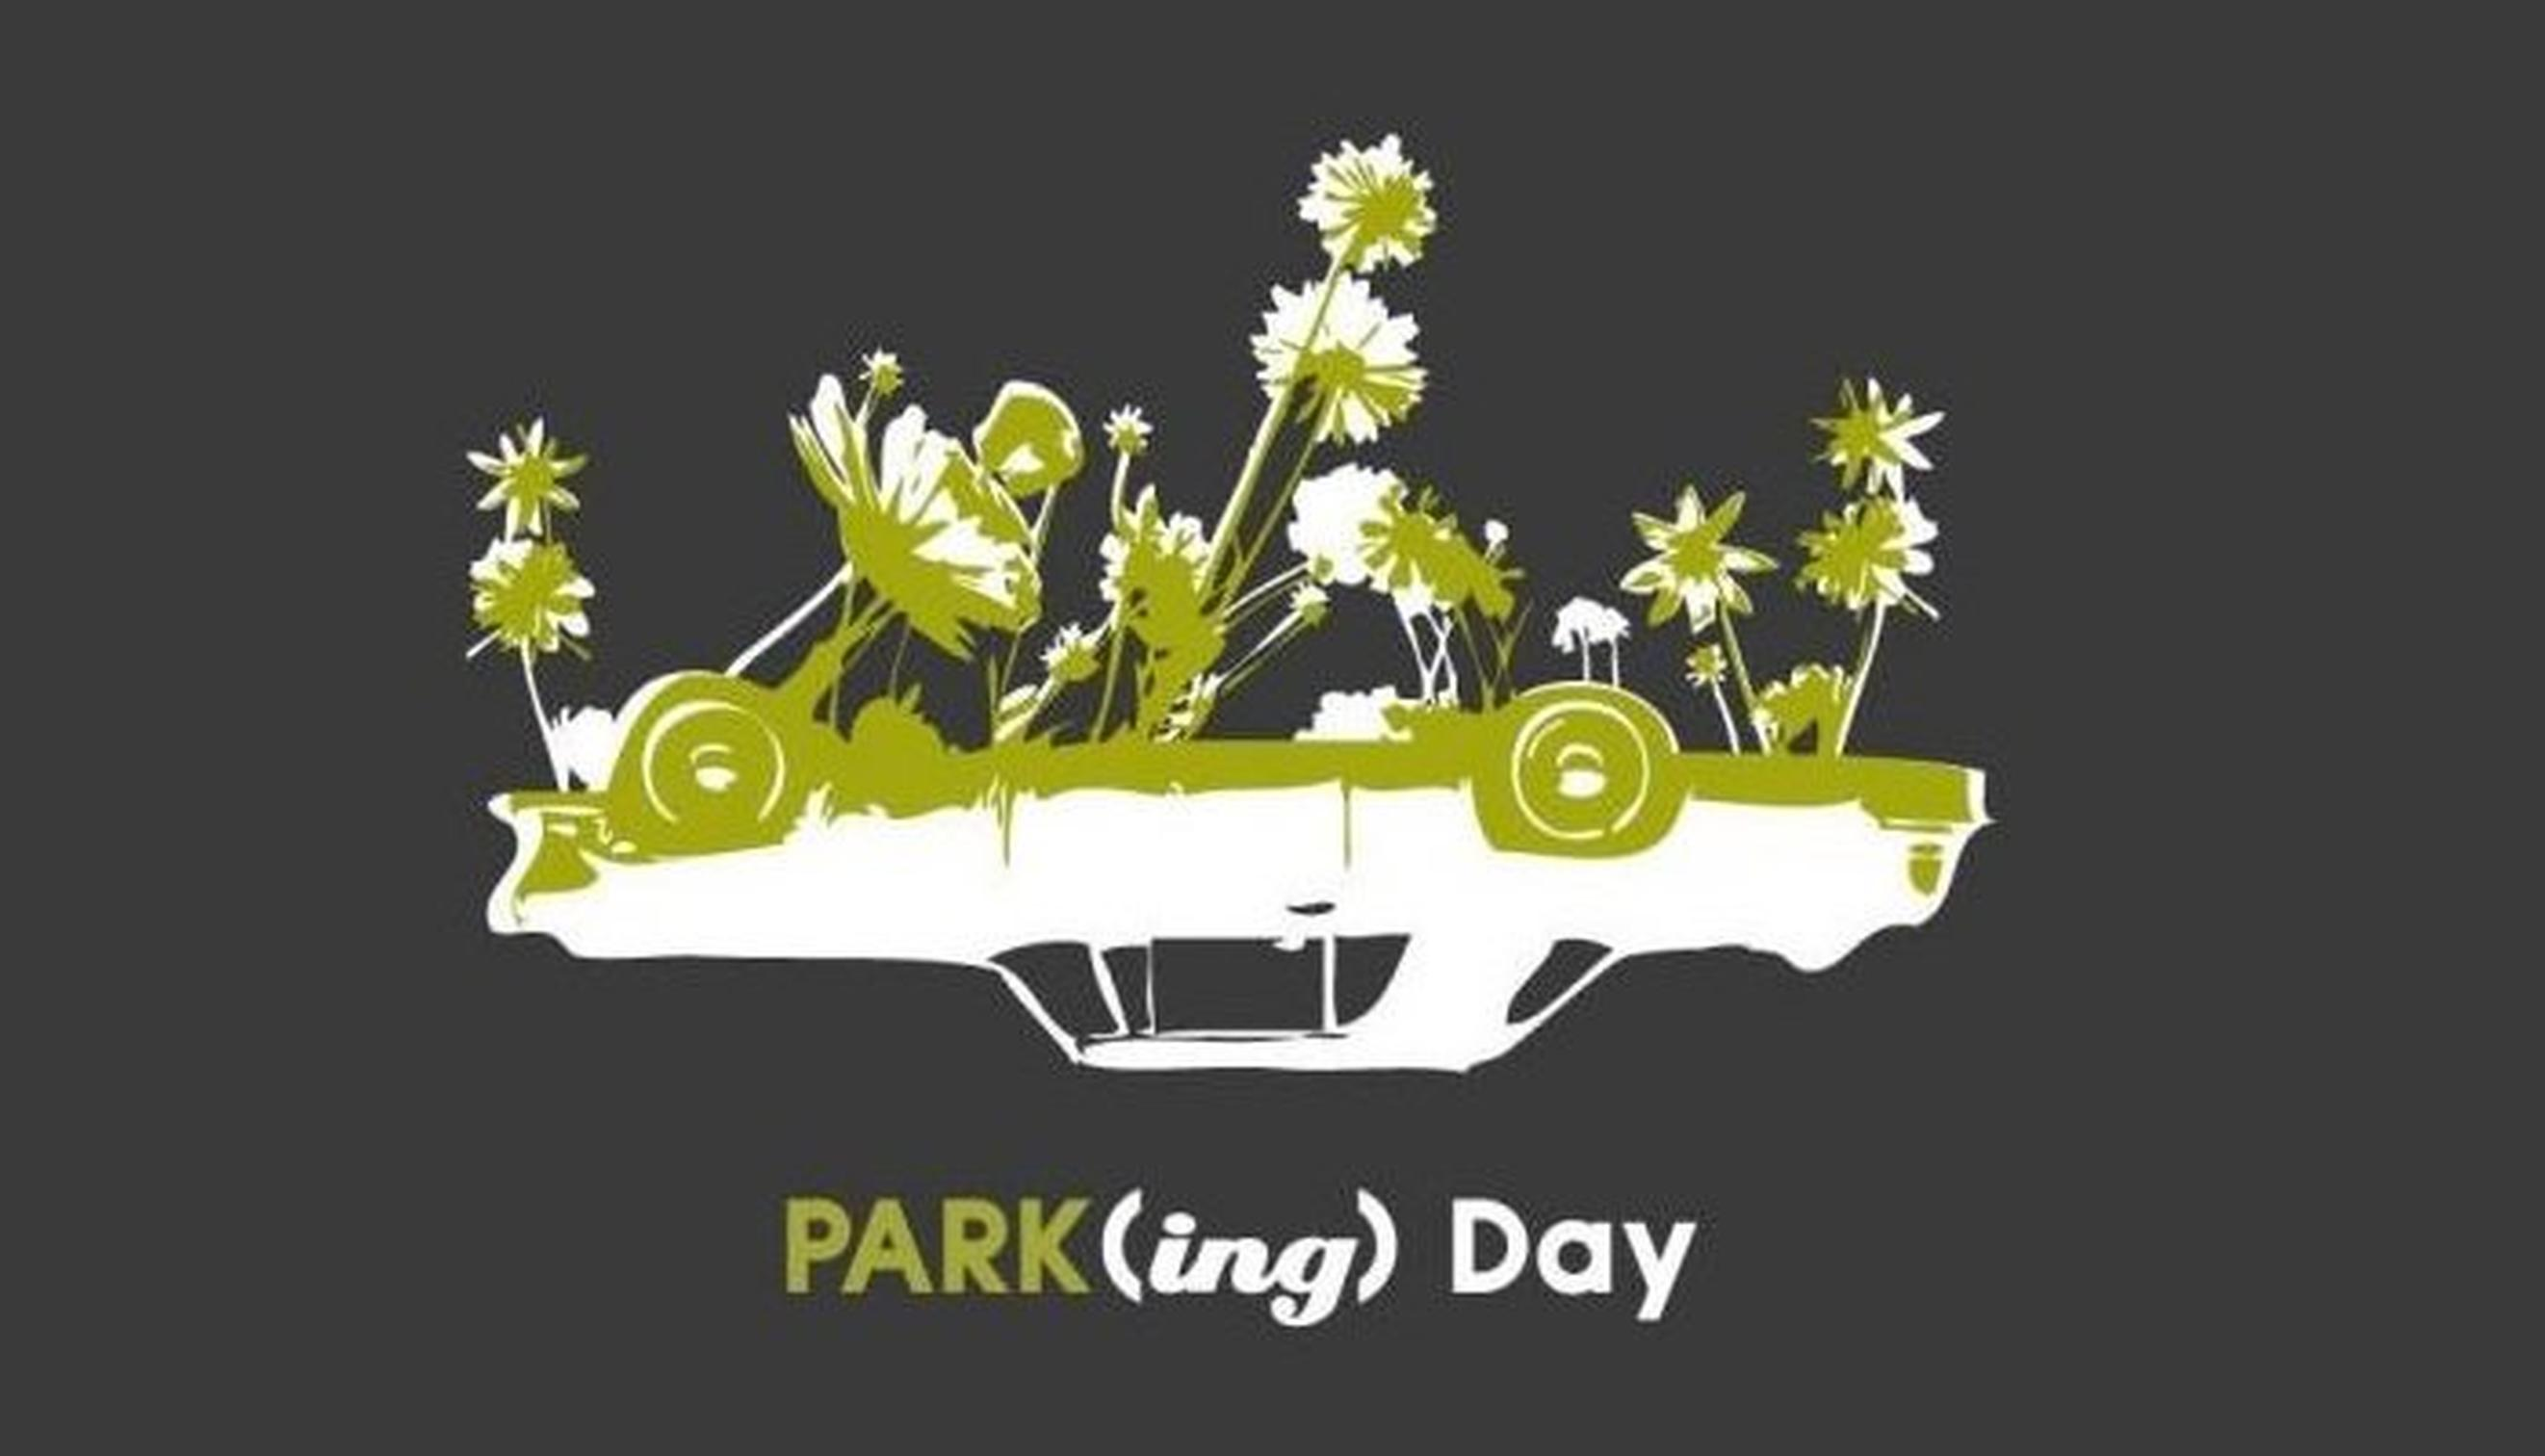 PARK(ing) Day has caught on across North America, much of Europe and in Australasia